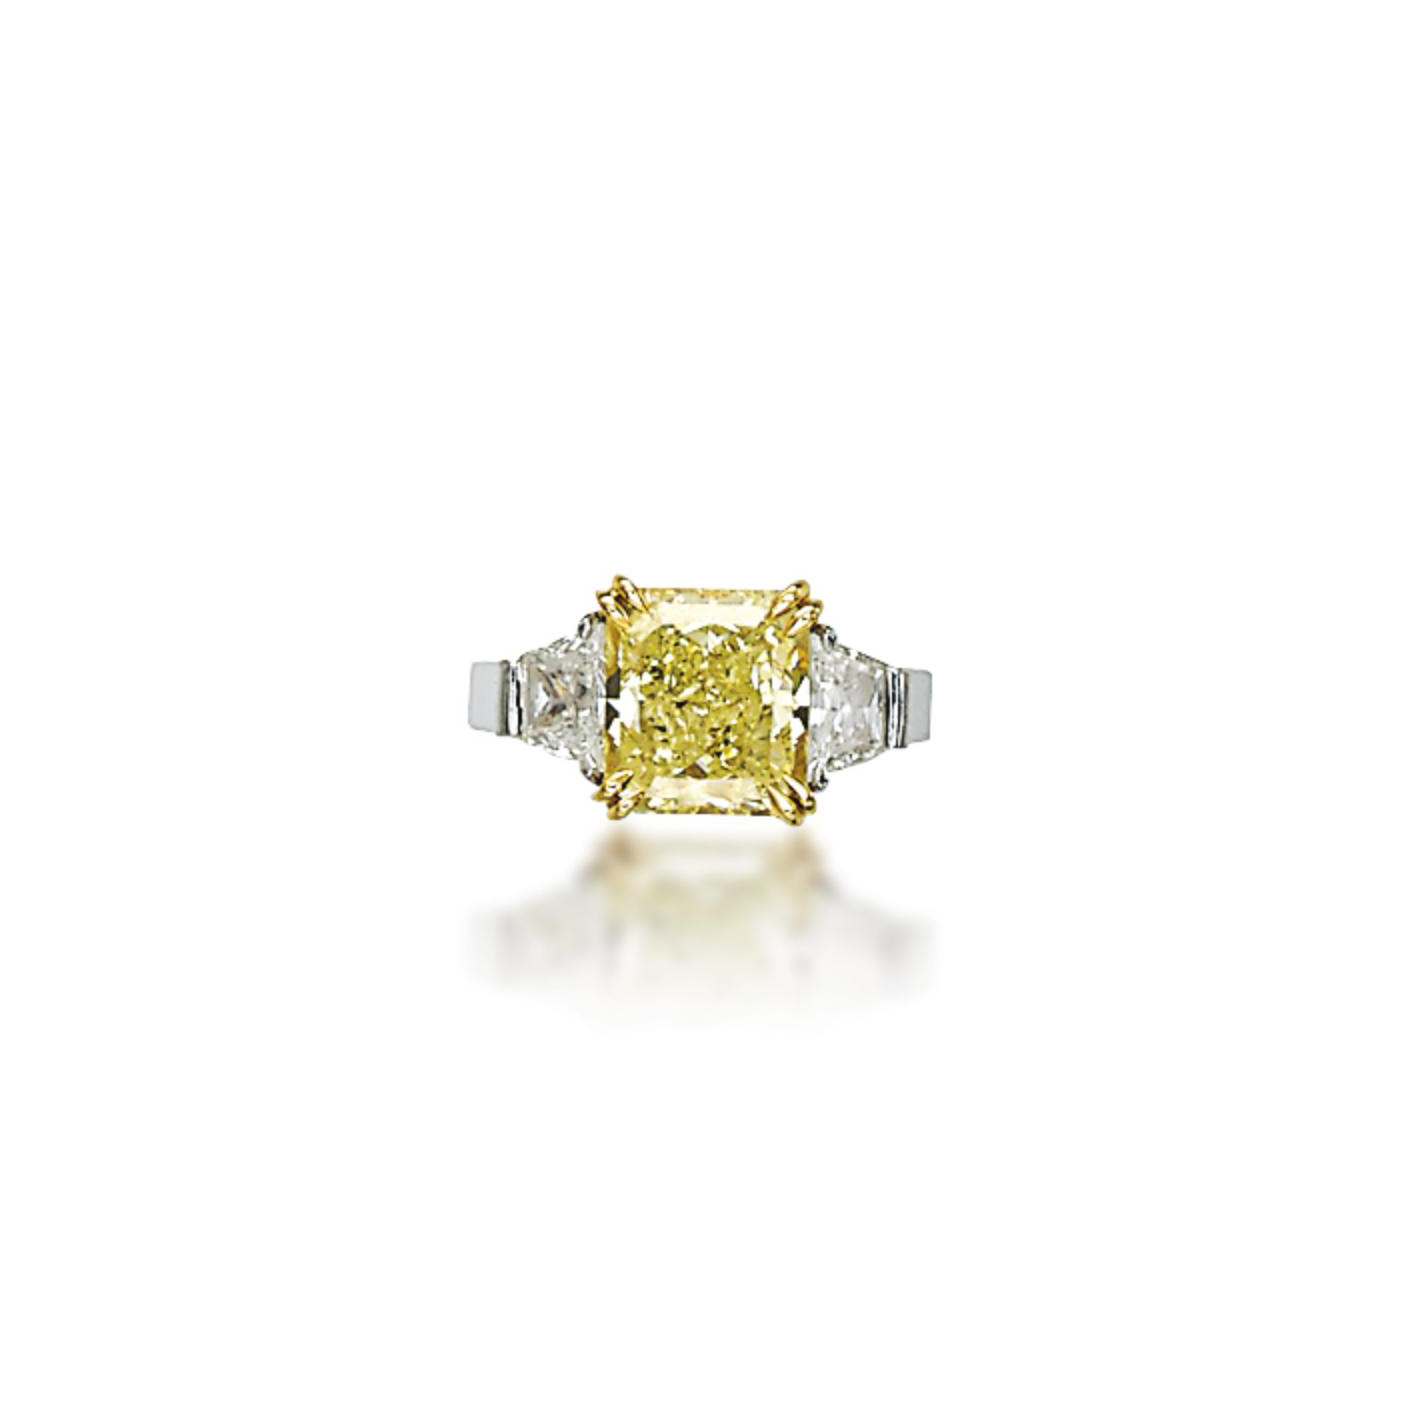 A COLOURED DIAMOND RING, BY CH